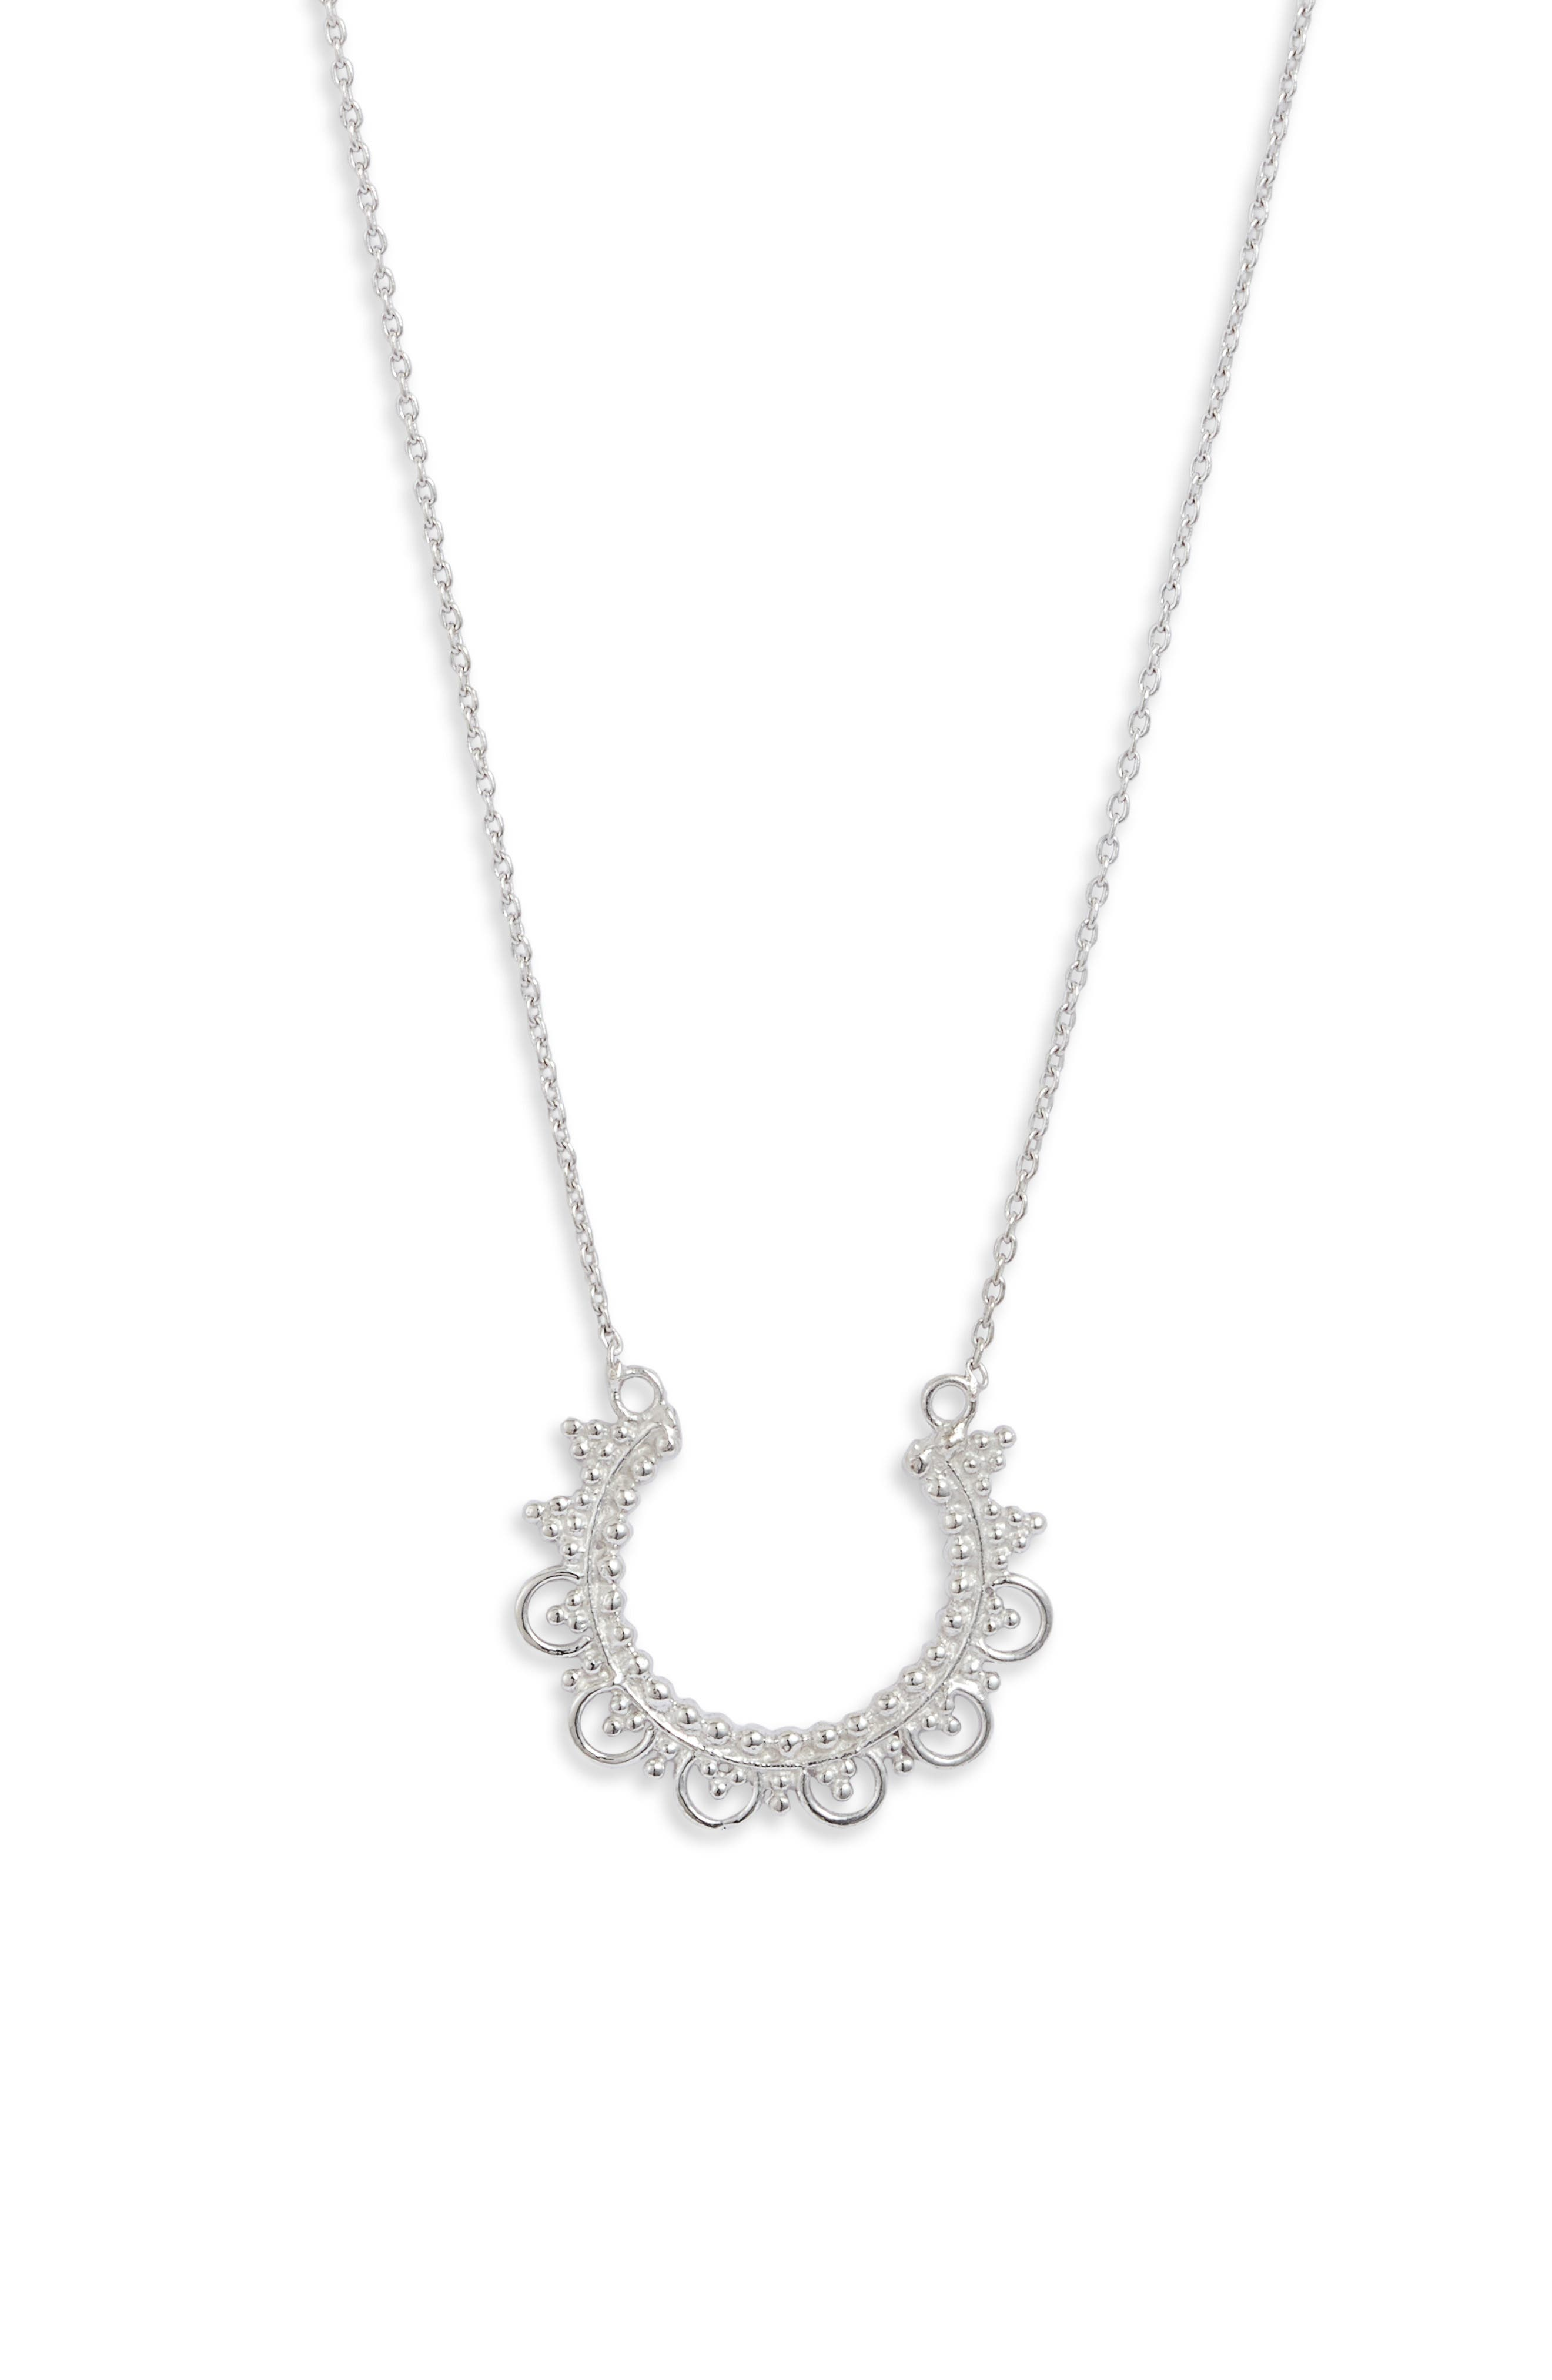 A simple design featuring an open circle embossed with lacy texturing defines this understated necklace. Style Name: Sterling Forever Open Circle Pendant Necklace. Style Number: 5931897. Available in stores.